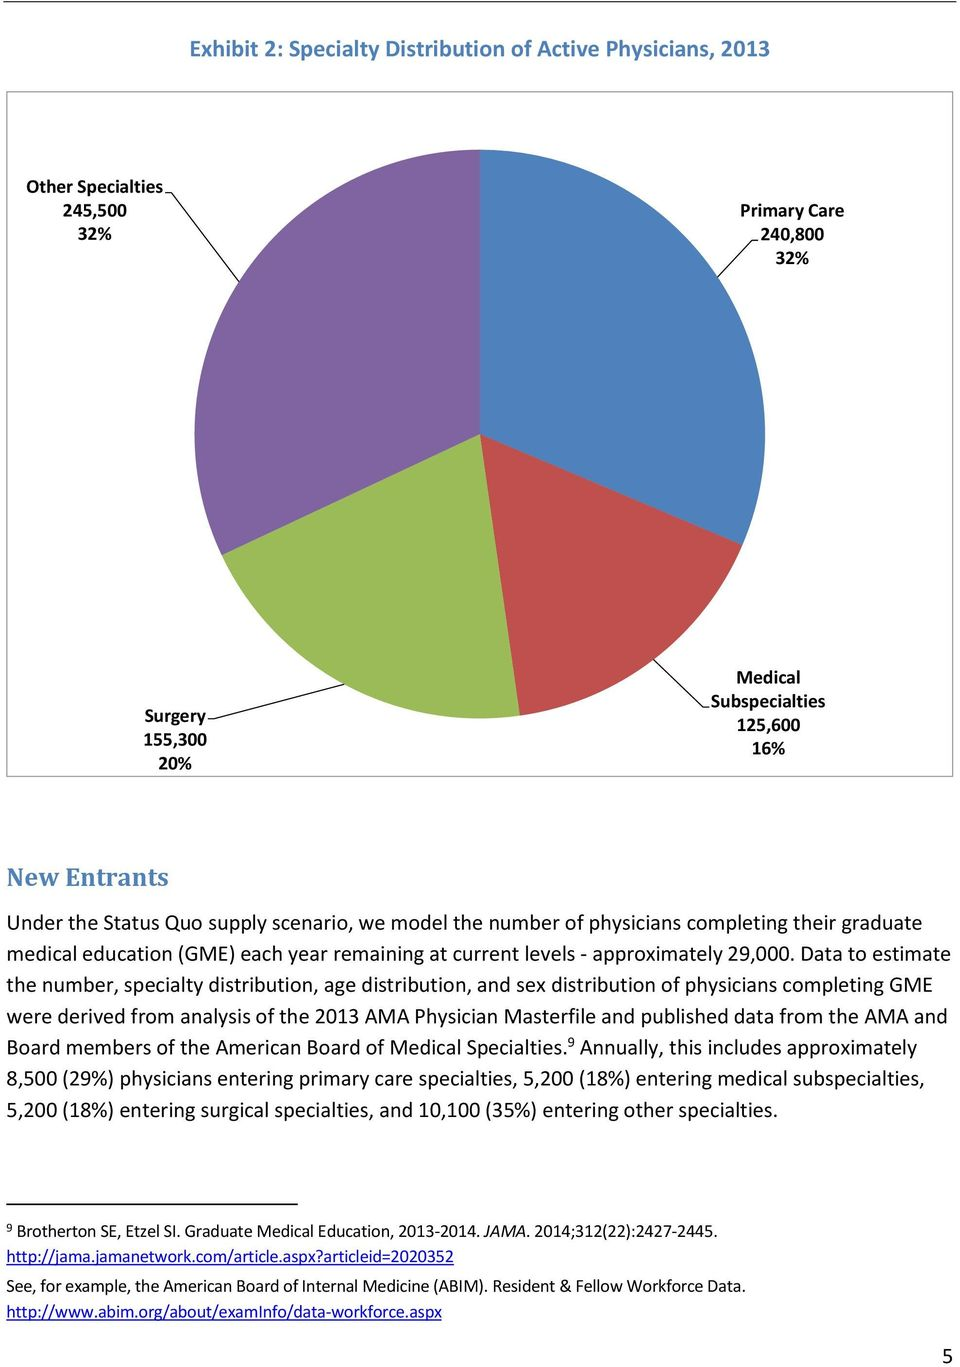 Data to estimate the number, specialty distribution, age distribution, and sex distribution of physicians completing GME were derived from analysis of the 2013 AMA Physician Masterfile and published